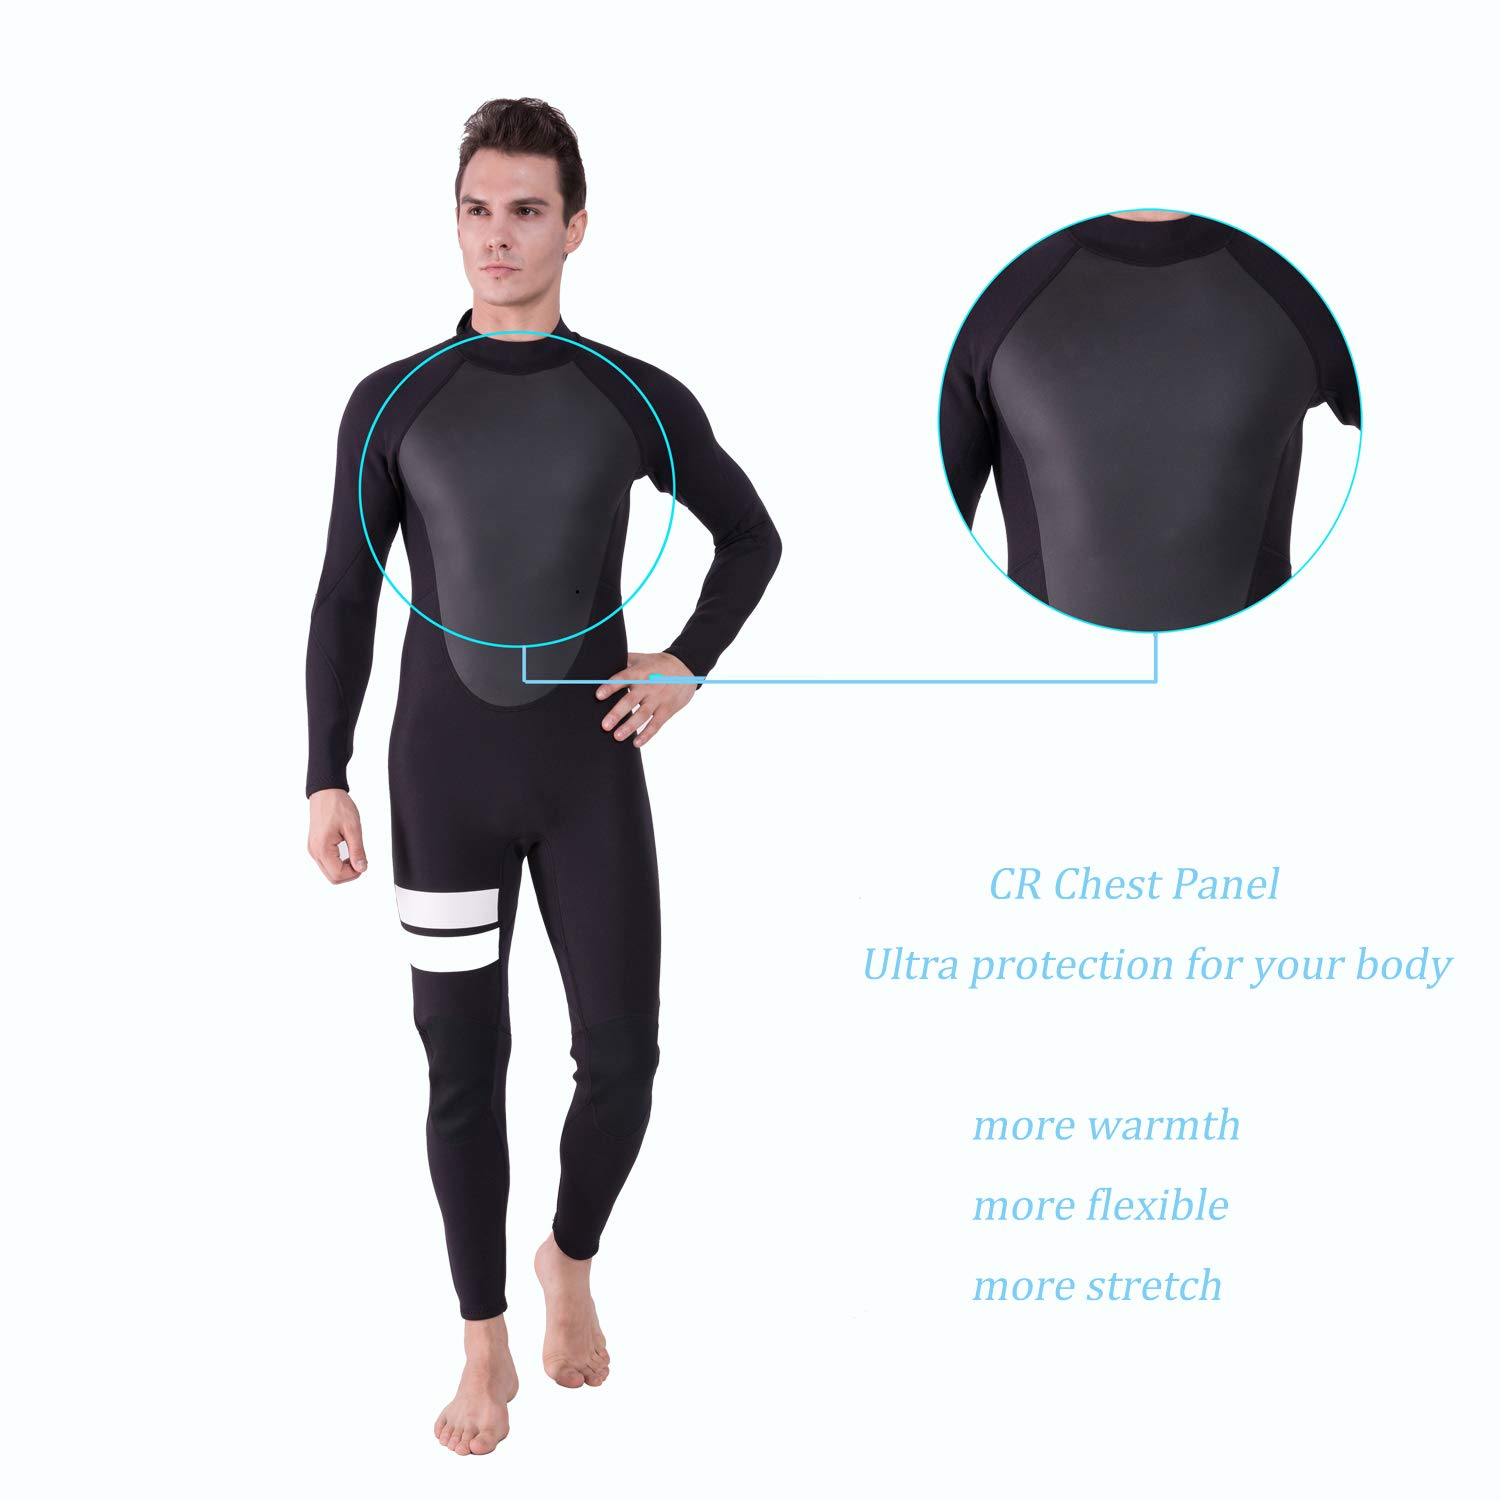 Realon Wetsuit Men Full 2mm Surfing Suit Diving Snorkeling Swimming Jumpsuit (2mm Black, Medium) by Realon (Image #3)